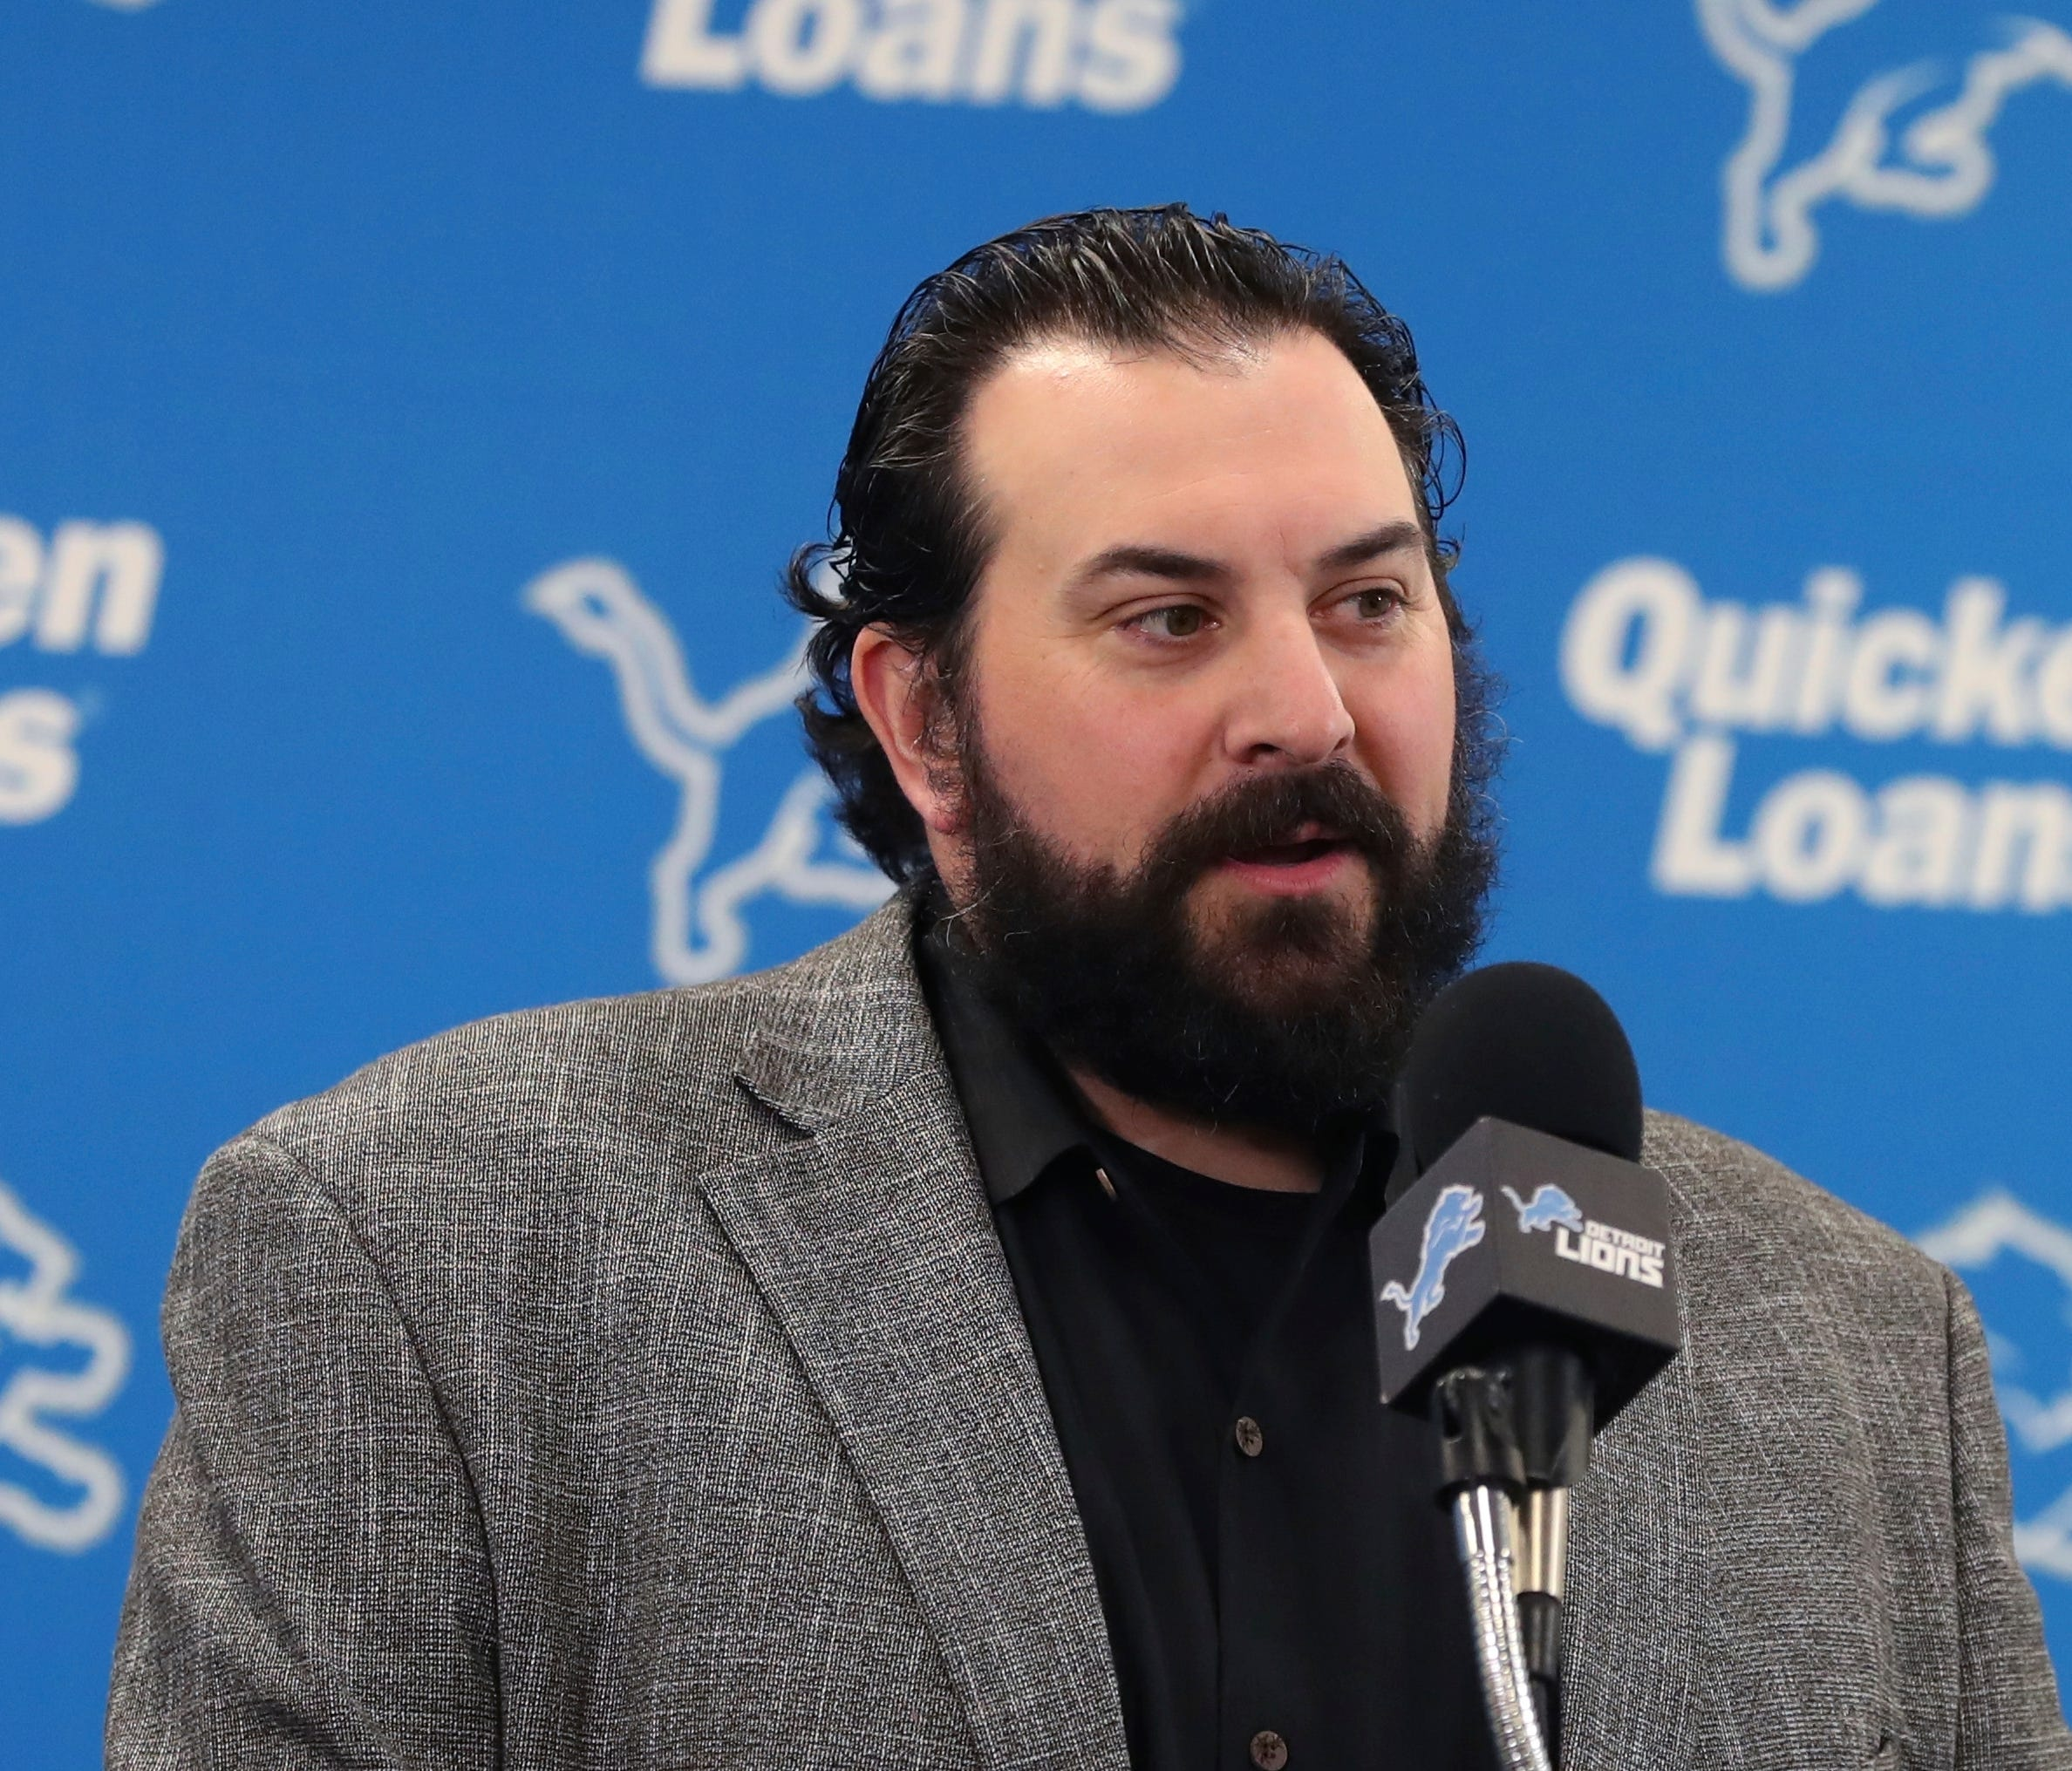 Detroit Lions head coach Matt Patricia introduces first-round draft pick Frank Ragnow at the team's training facility in April.